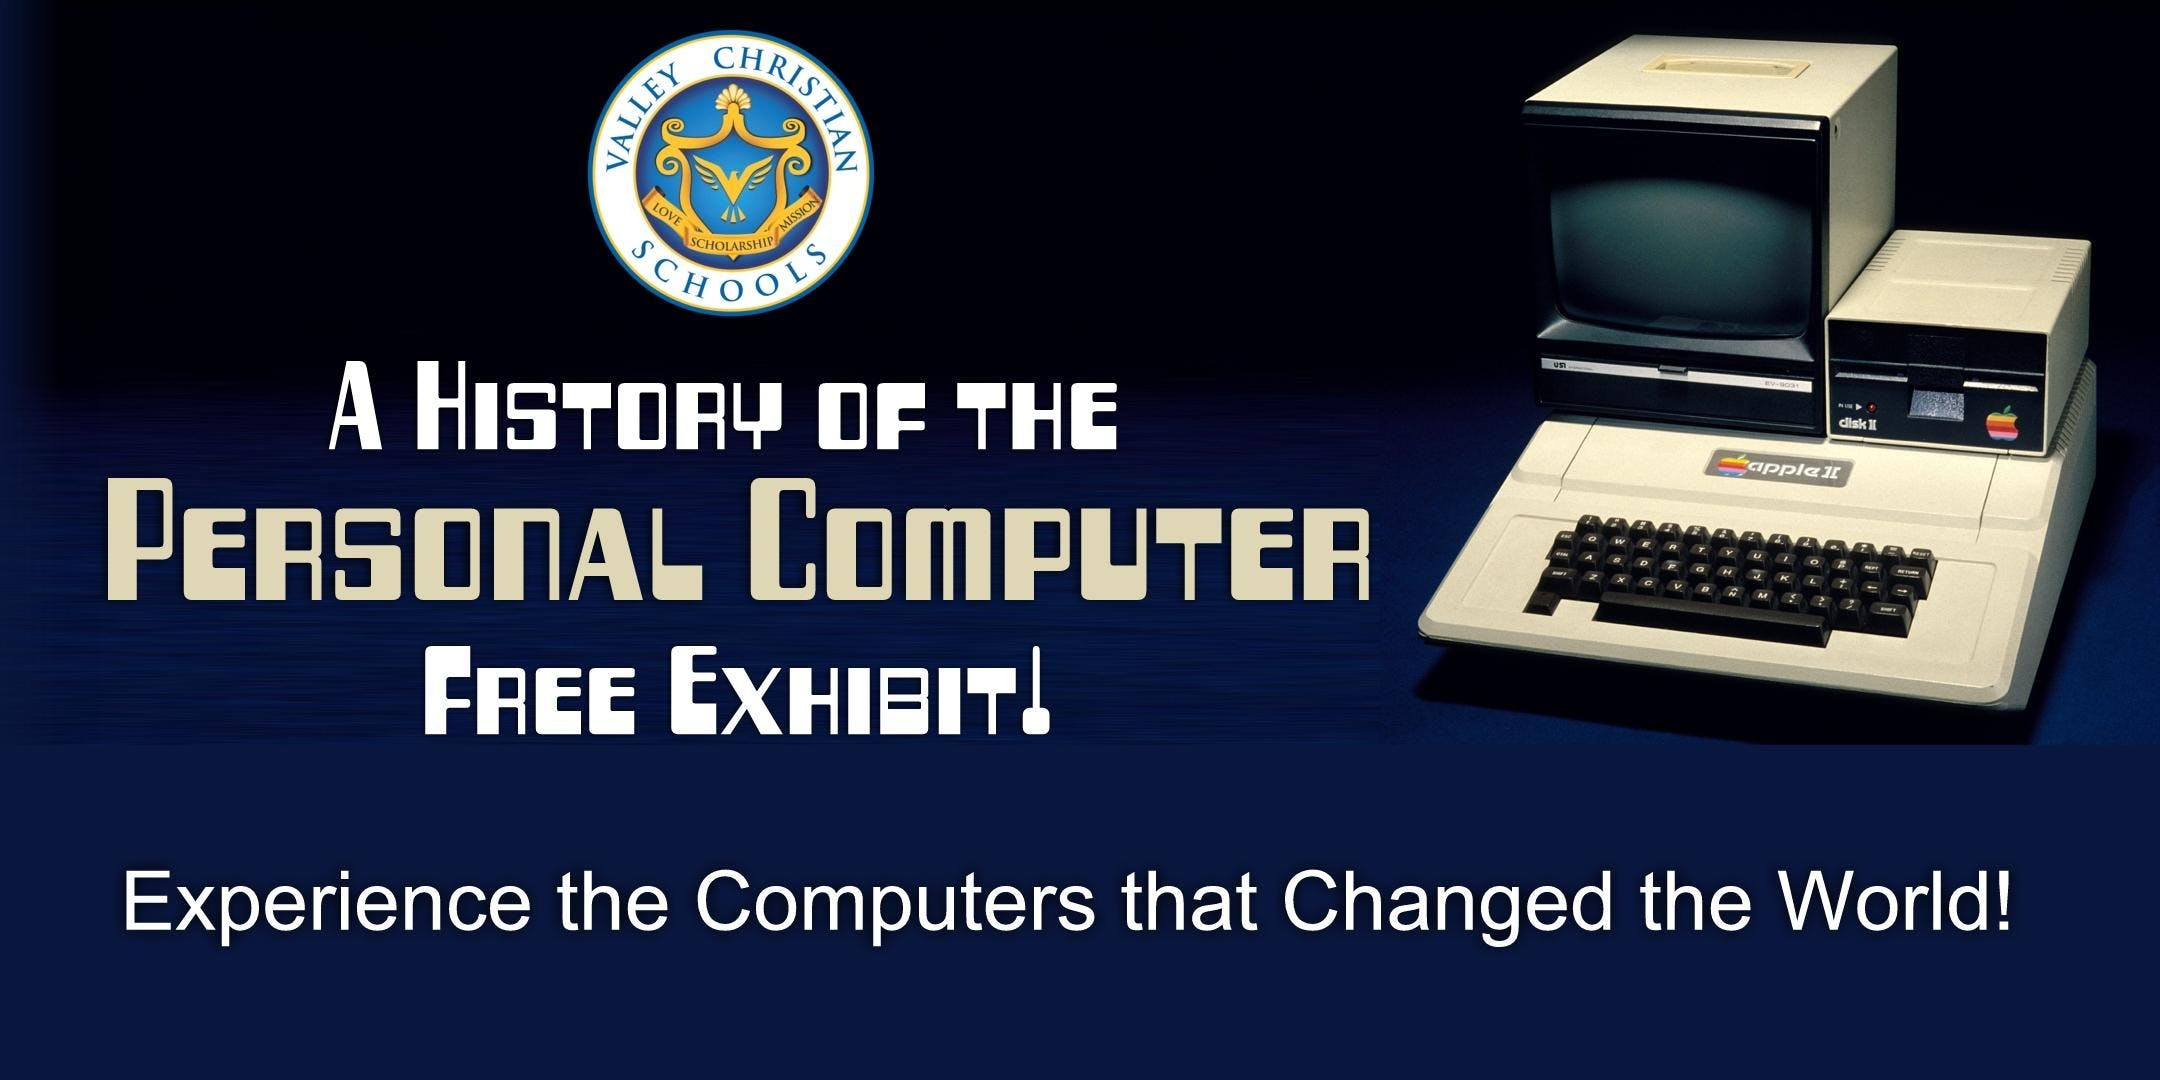 A History of the Personal Computer Free Exhibit